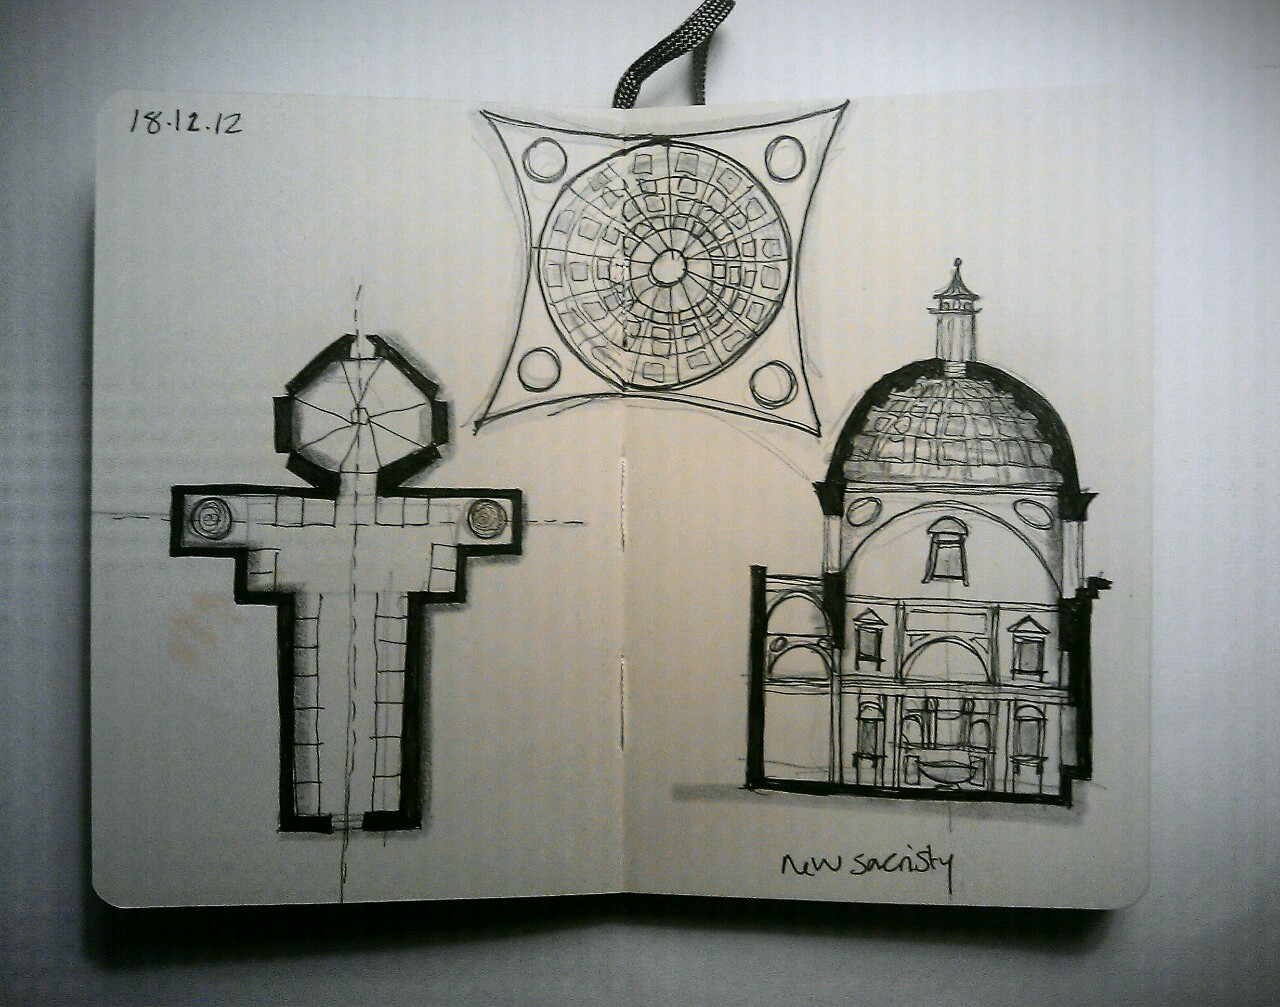 365 drawings later … day 322 … new sacristy